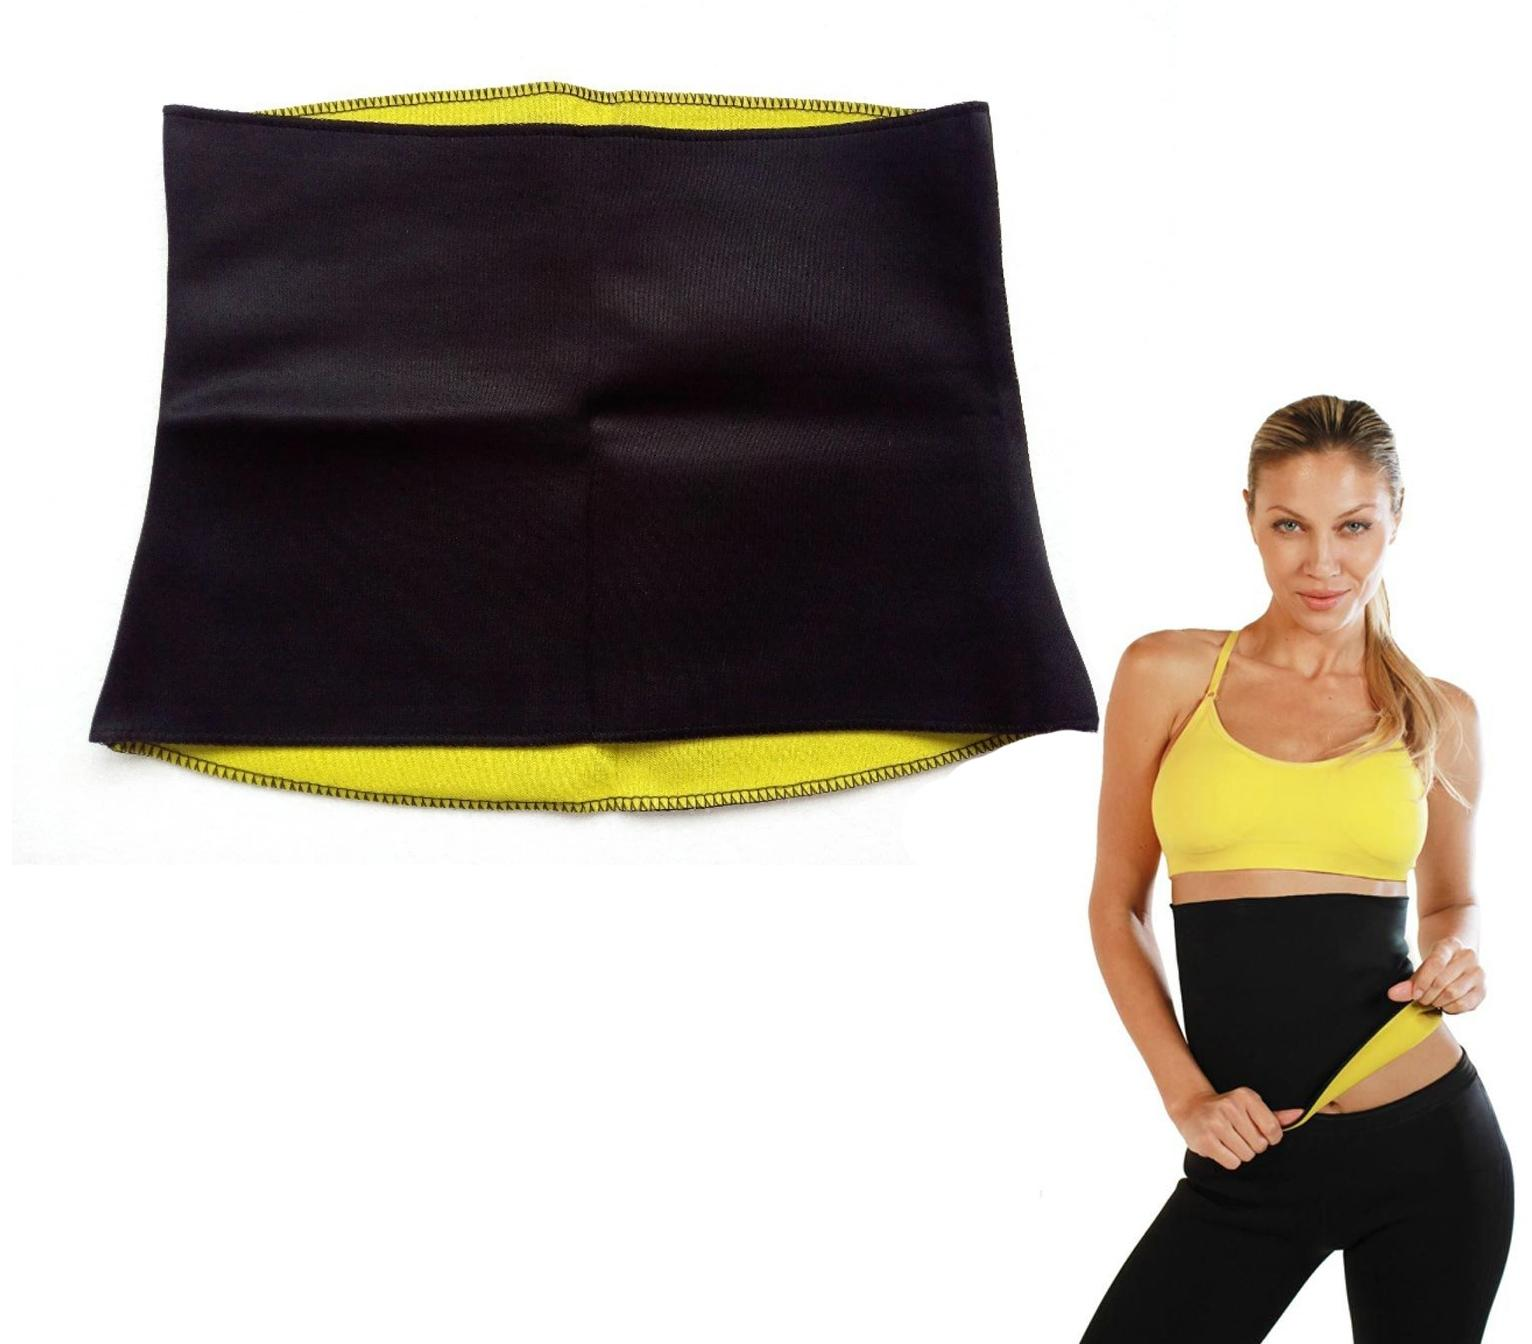 8e4906f7a10 Exercise Belts at Best Prices in Sri Lanka - Daraz.lk